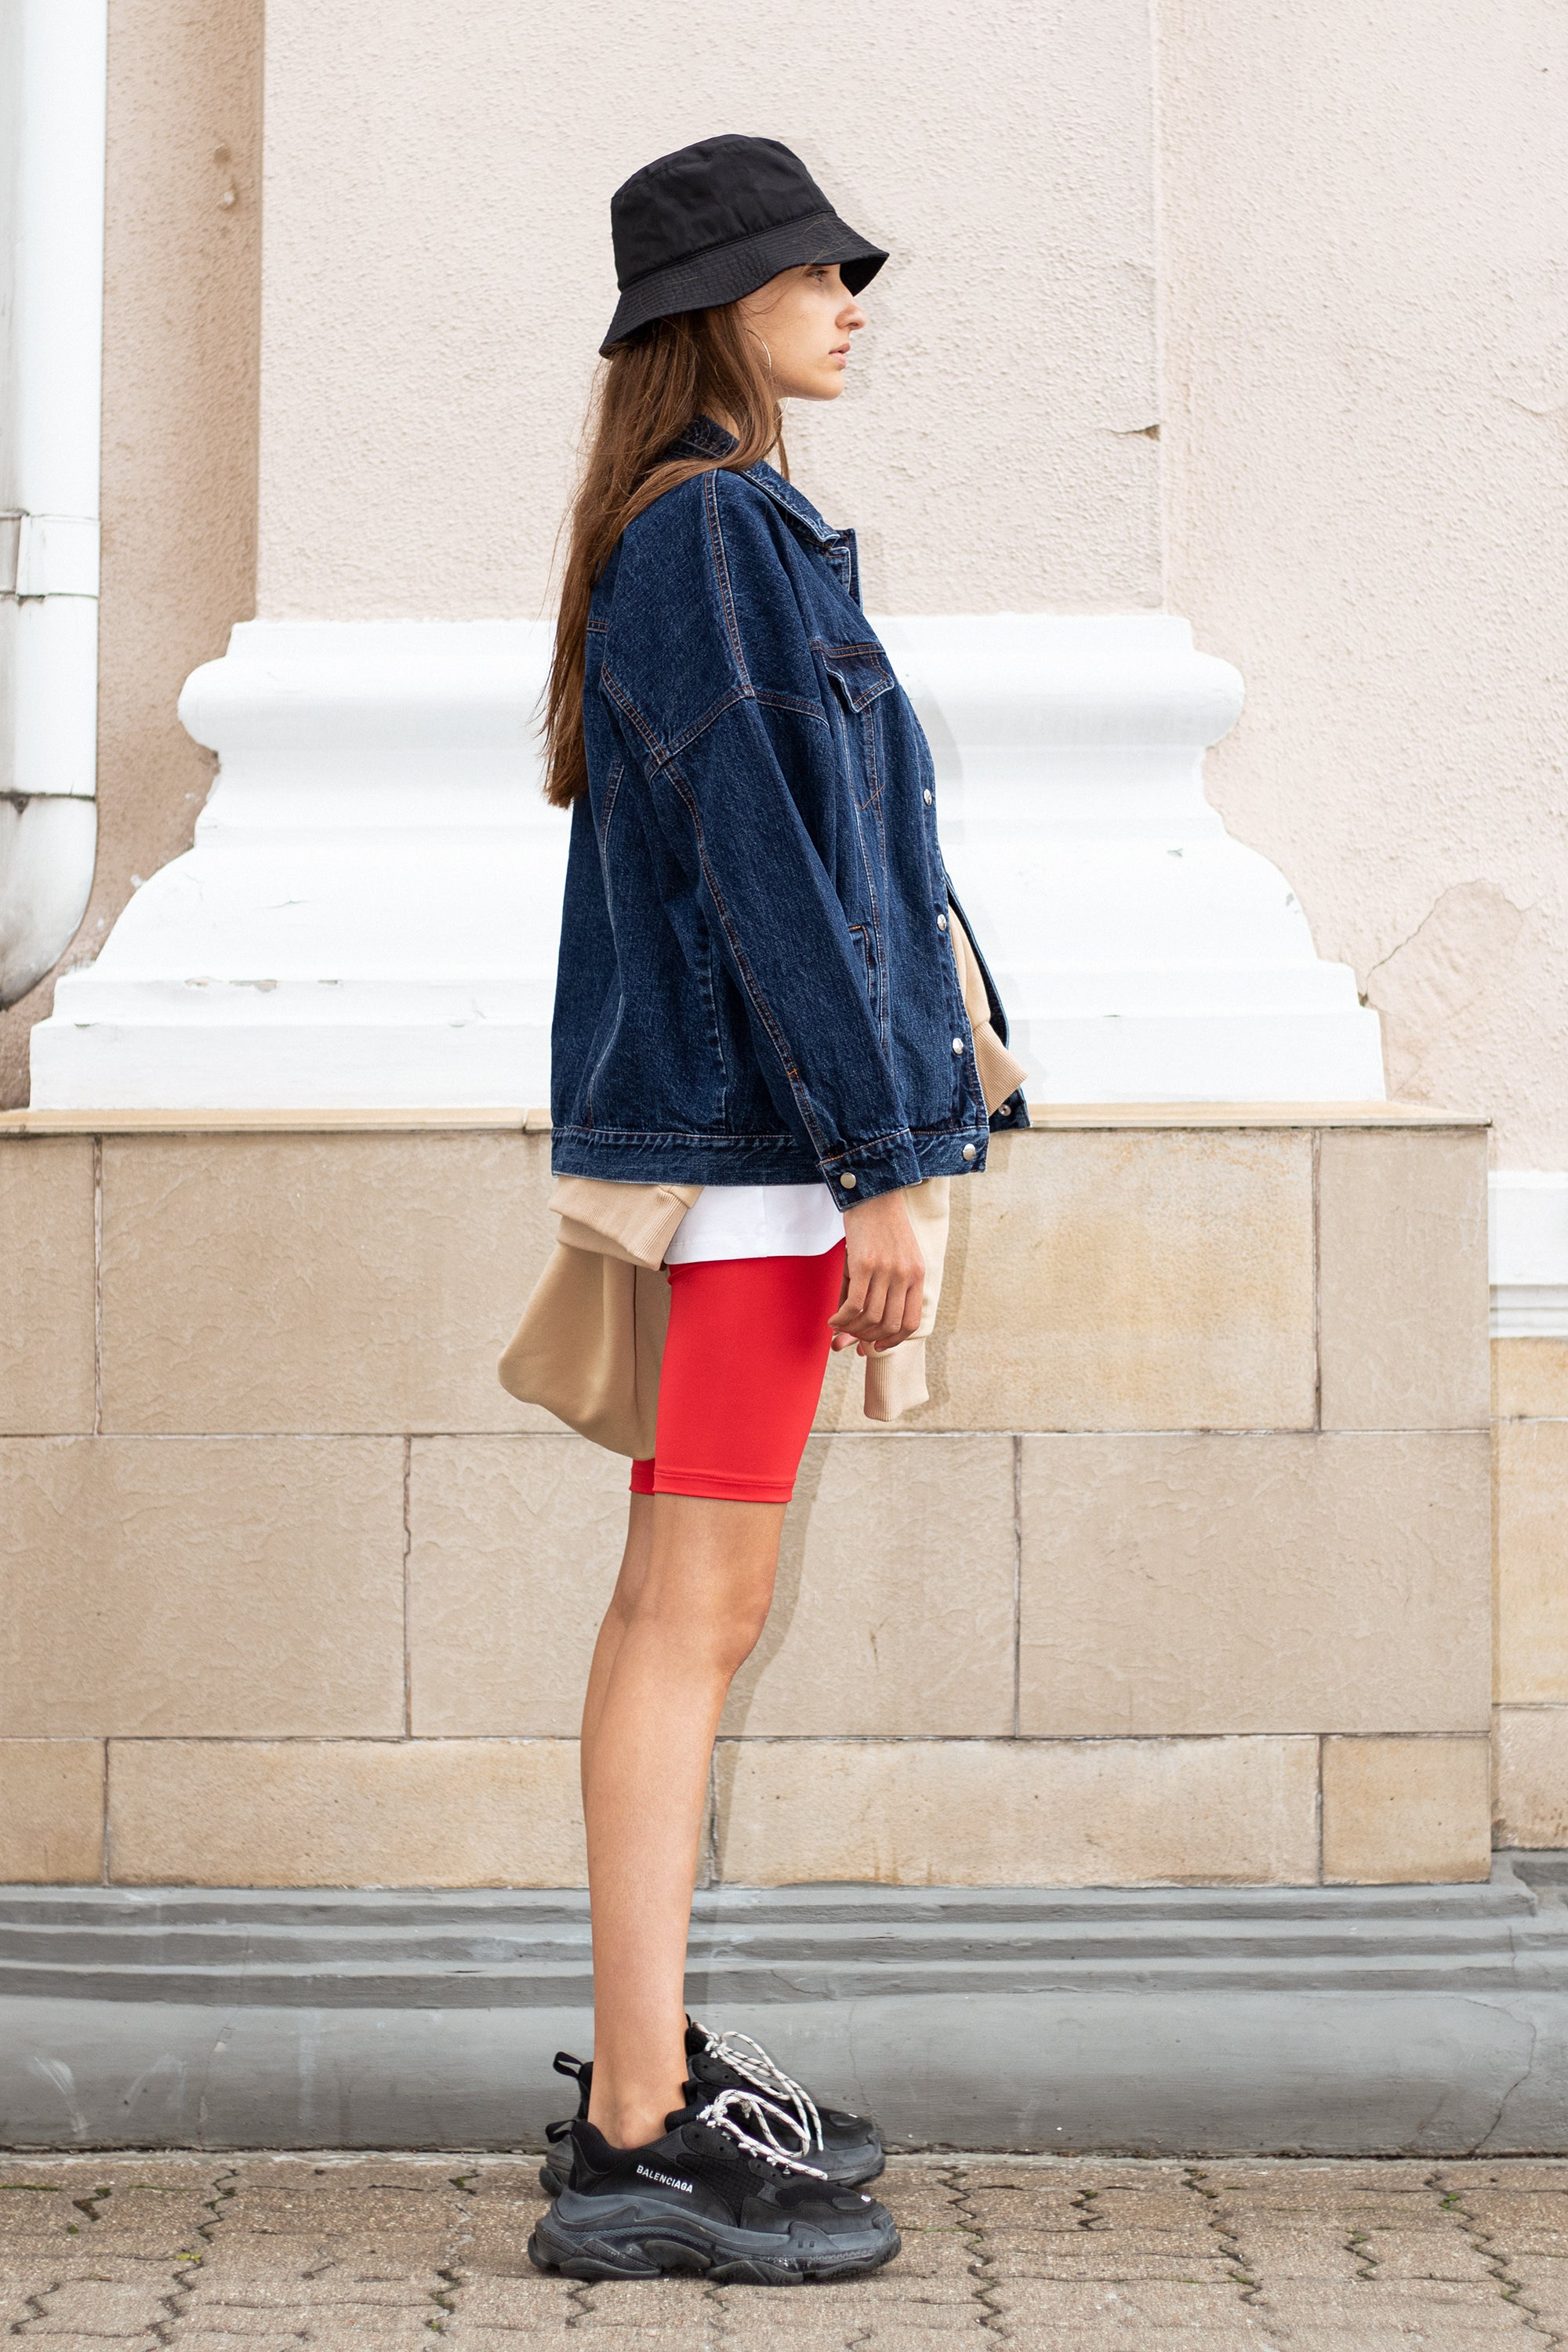 scarlet-red-copenhagen-shorts-french-series-love-hoodie-genes2-dark-denim-jacket.jpg